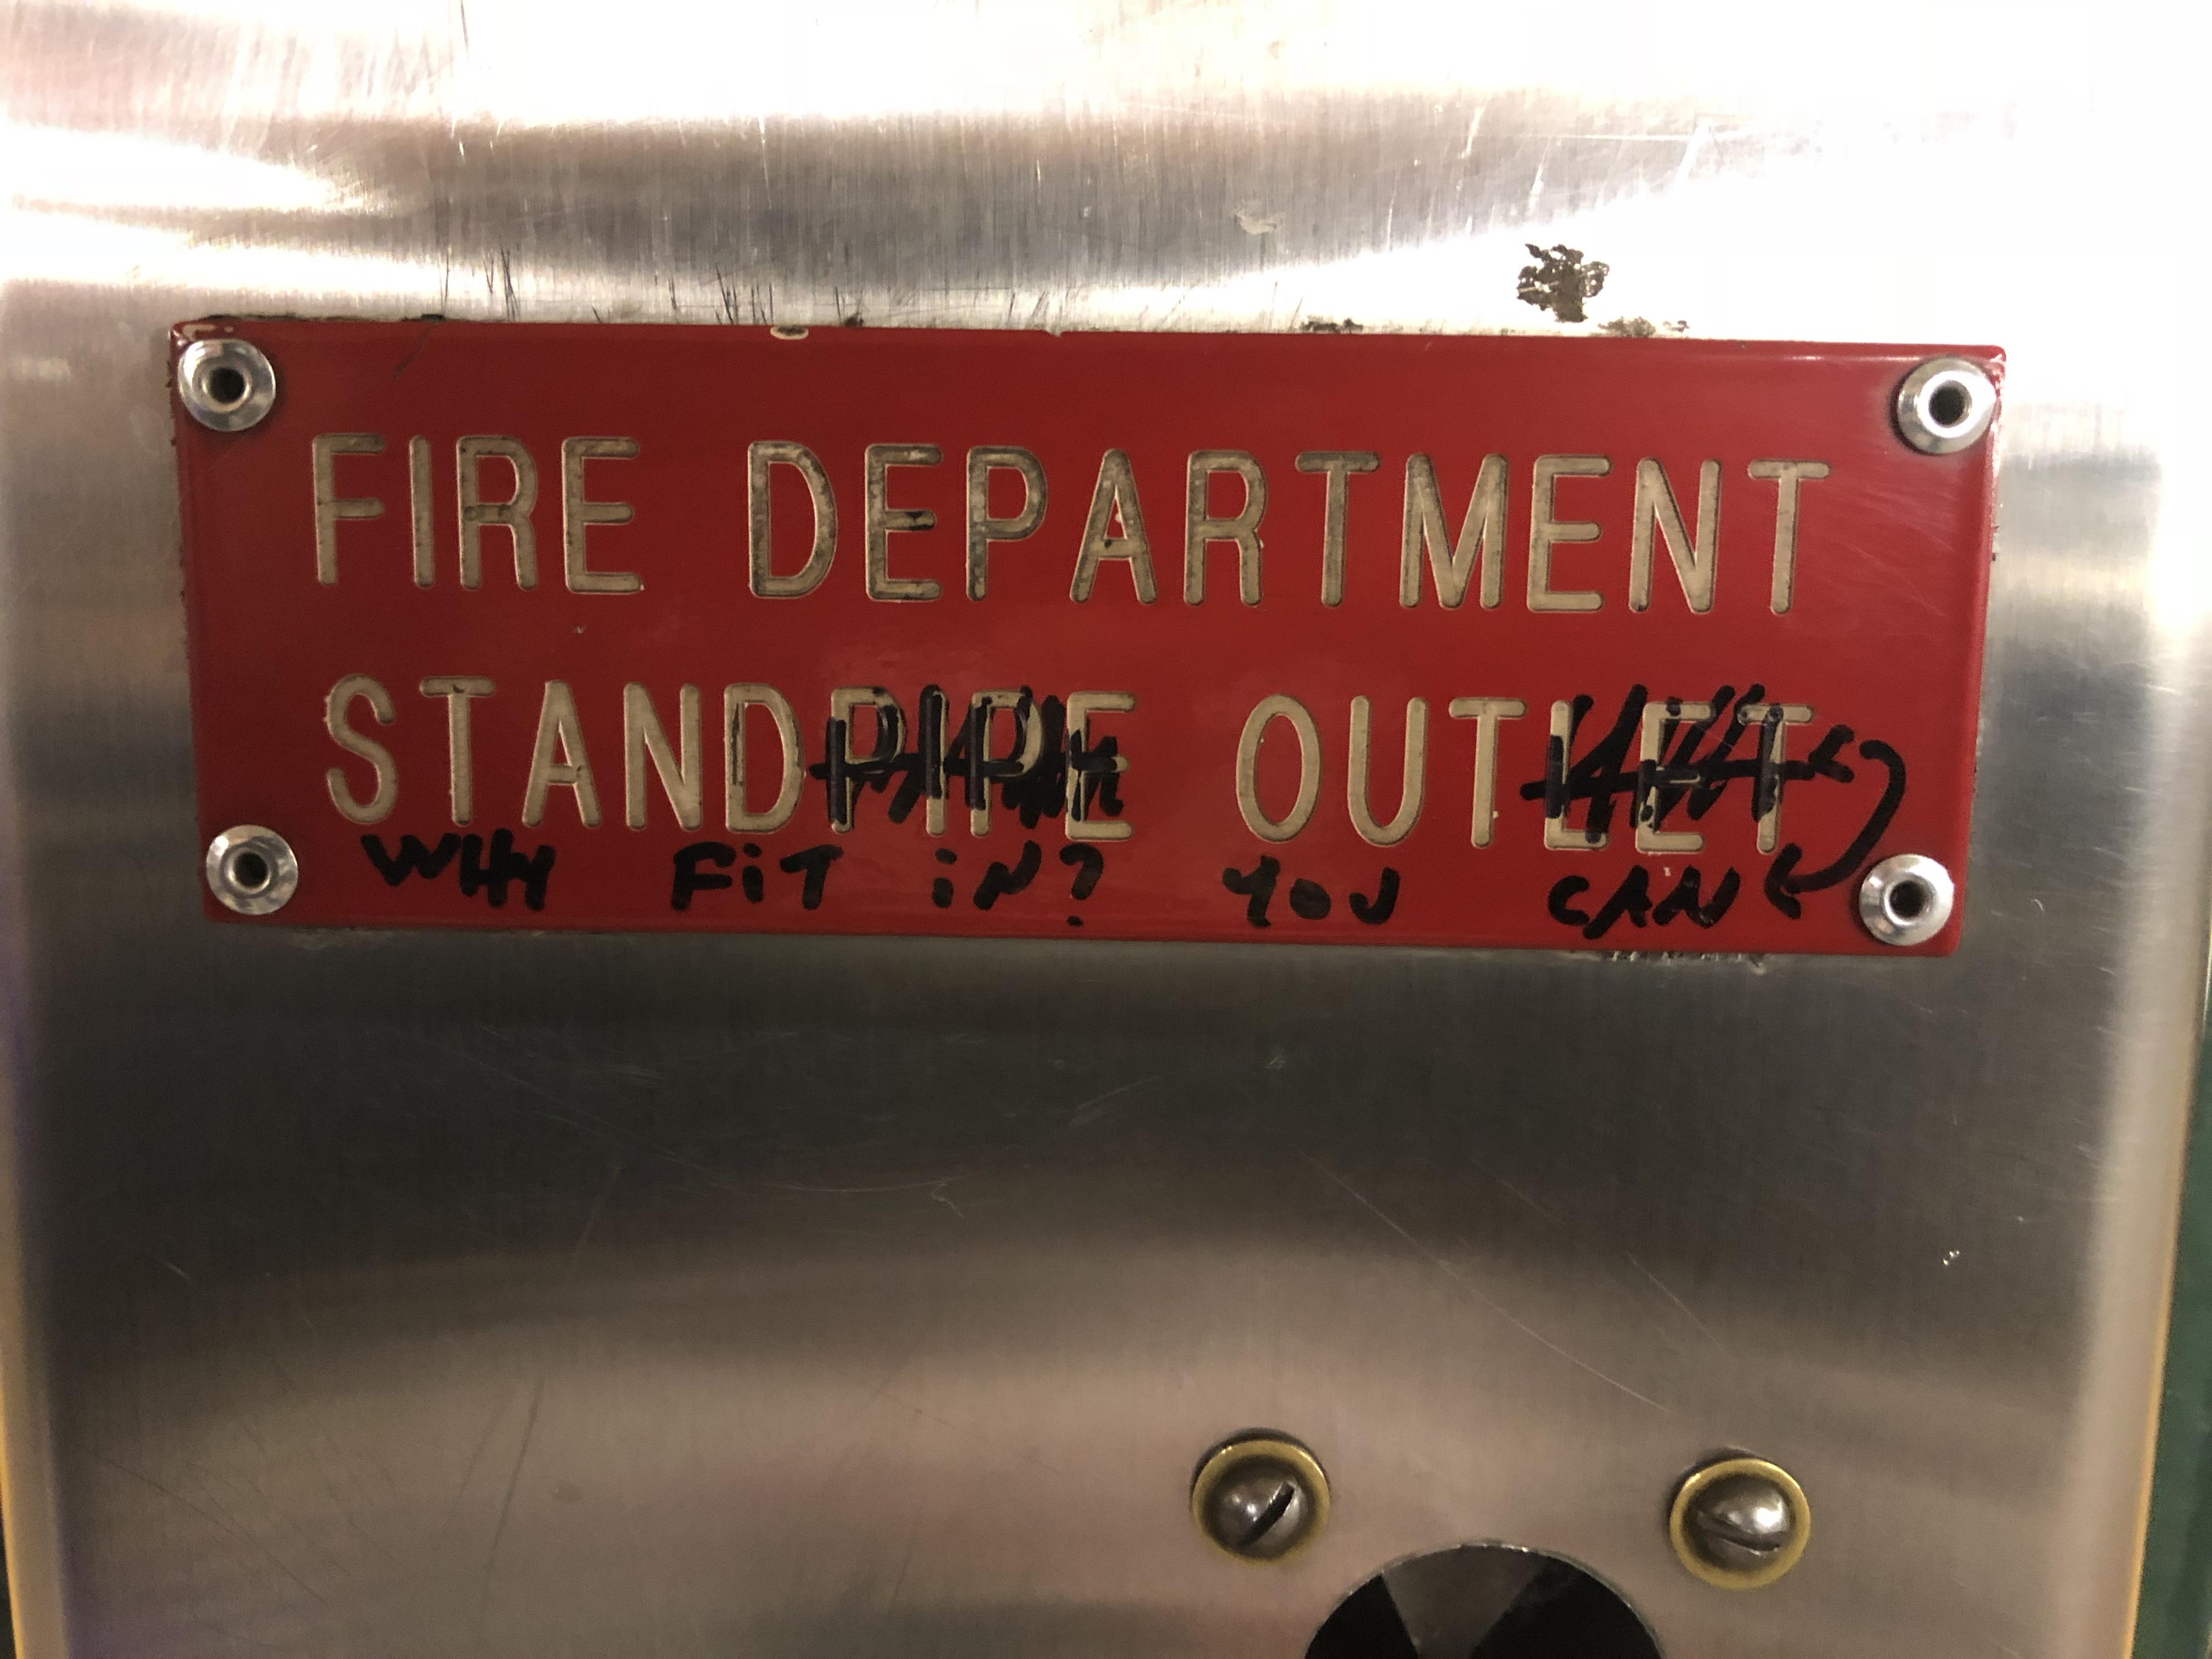 [IMAGE] Why fit in? You can -STAND OUT-. Seen at Penn Station subway / NYC.